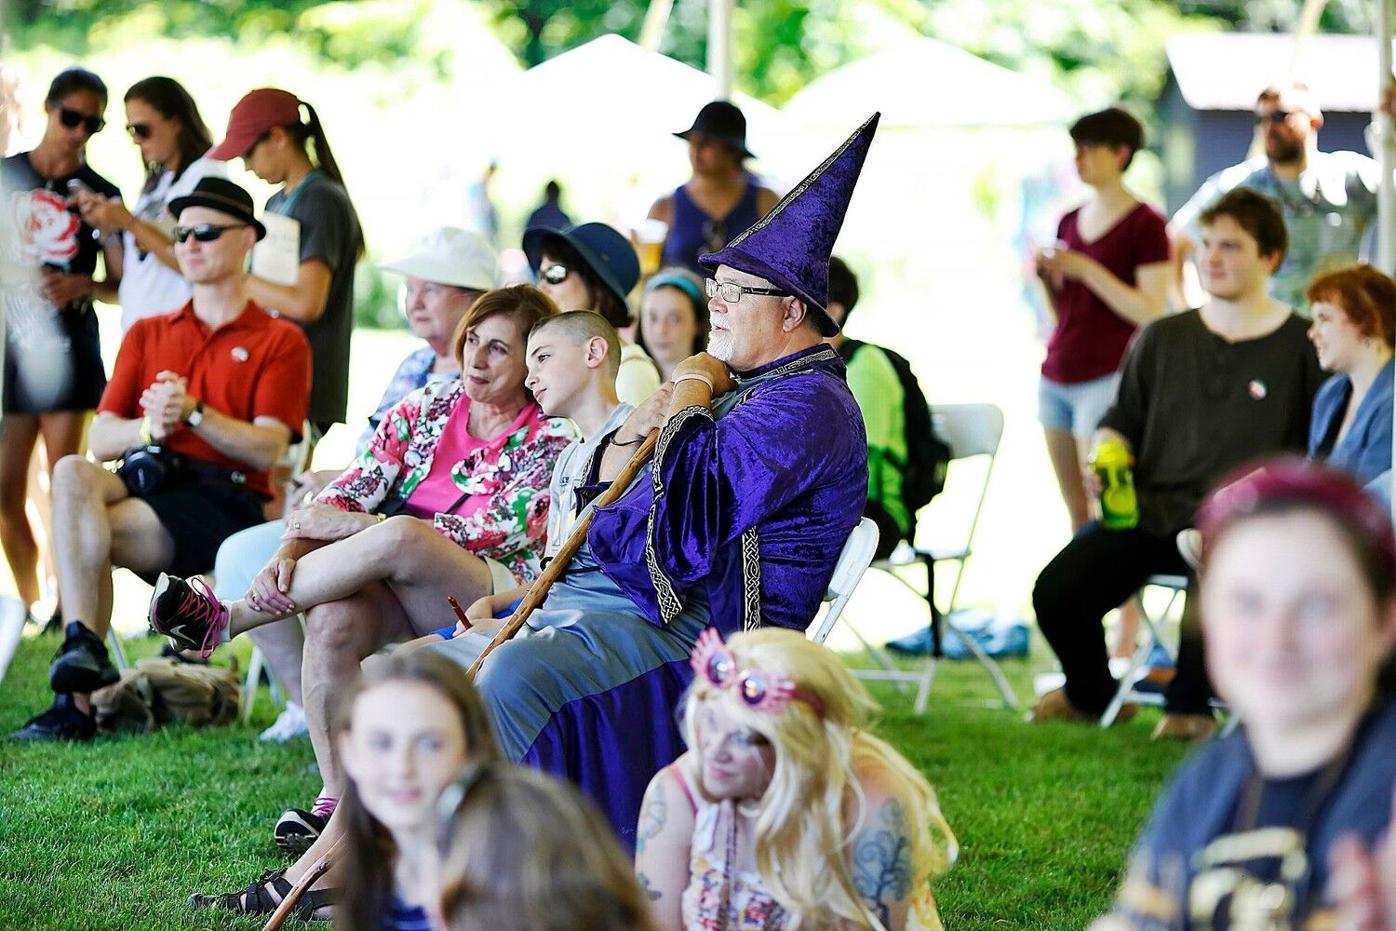 Harry Potter fans find magic at Greylock Glen